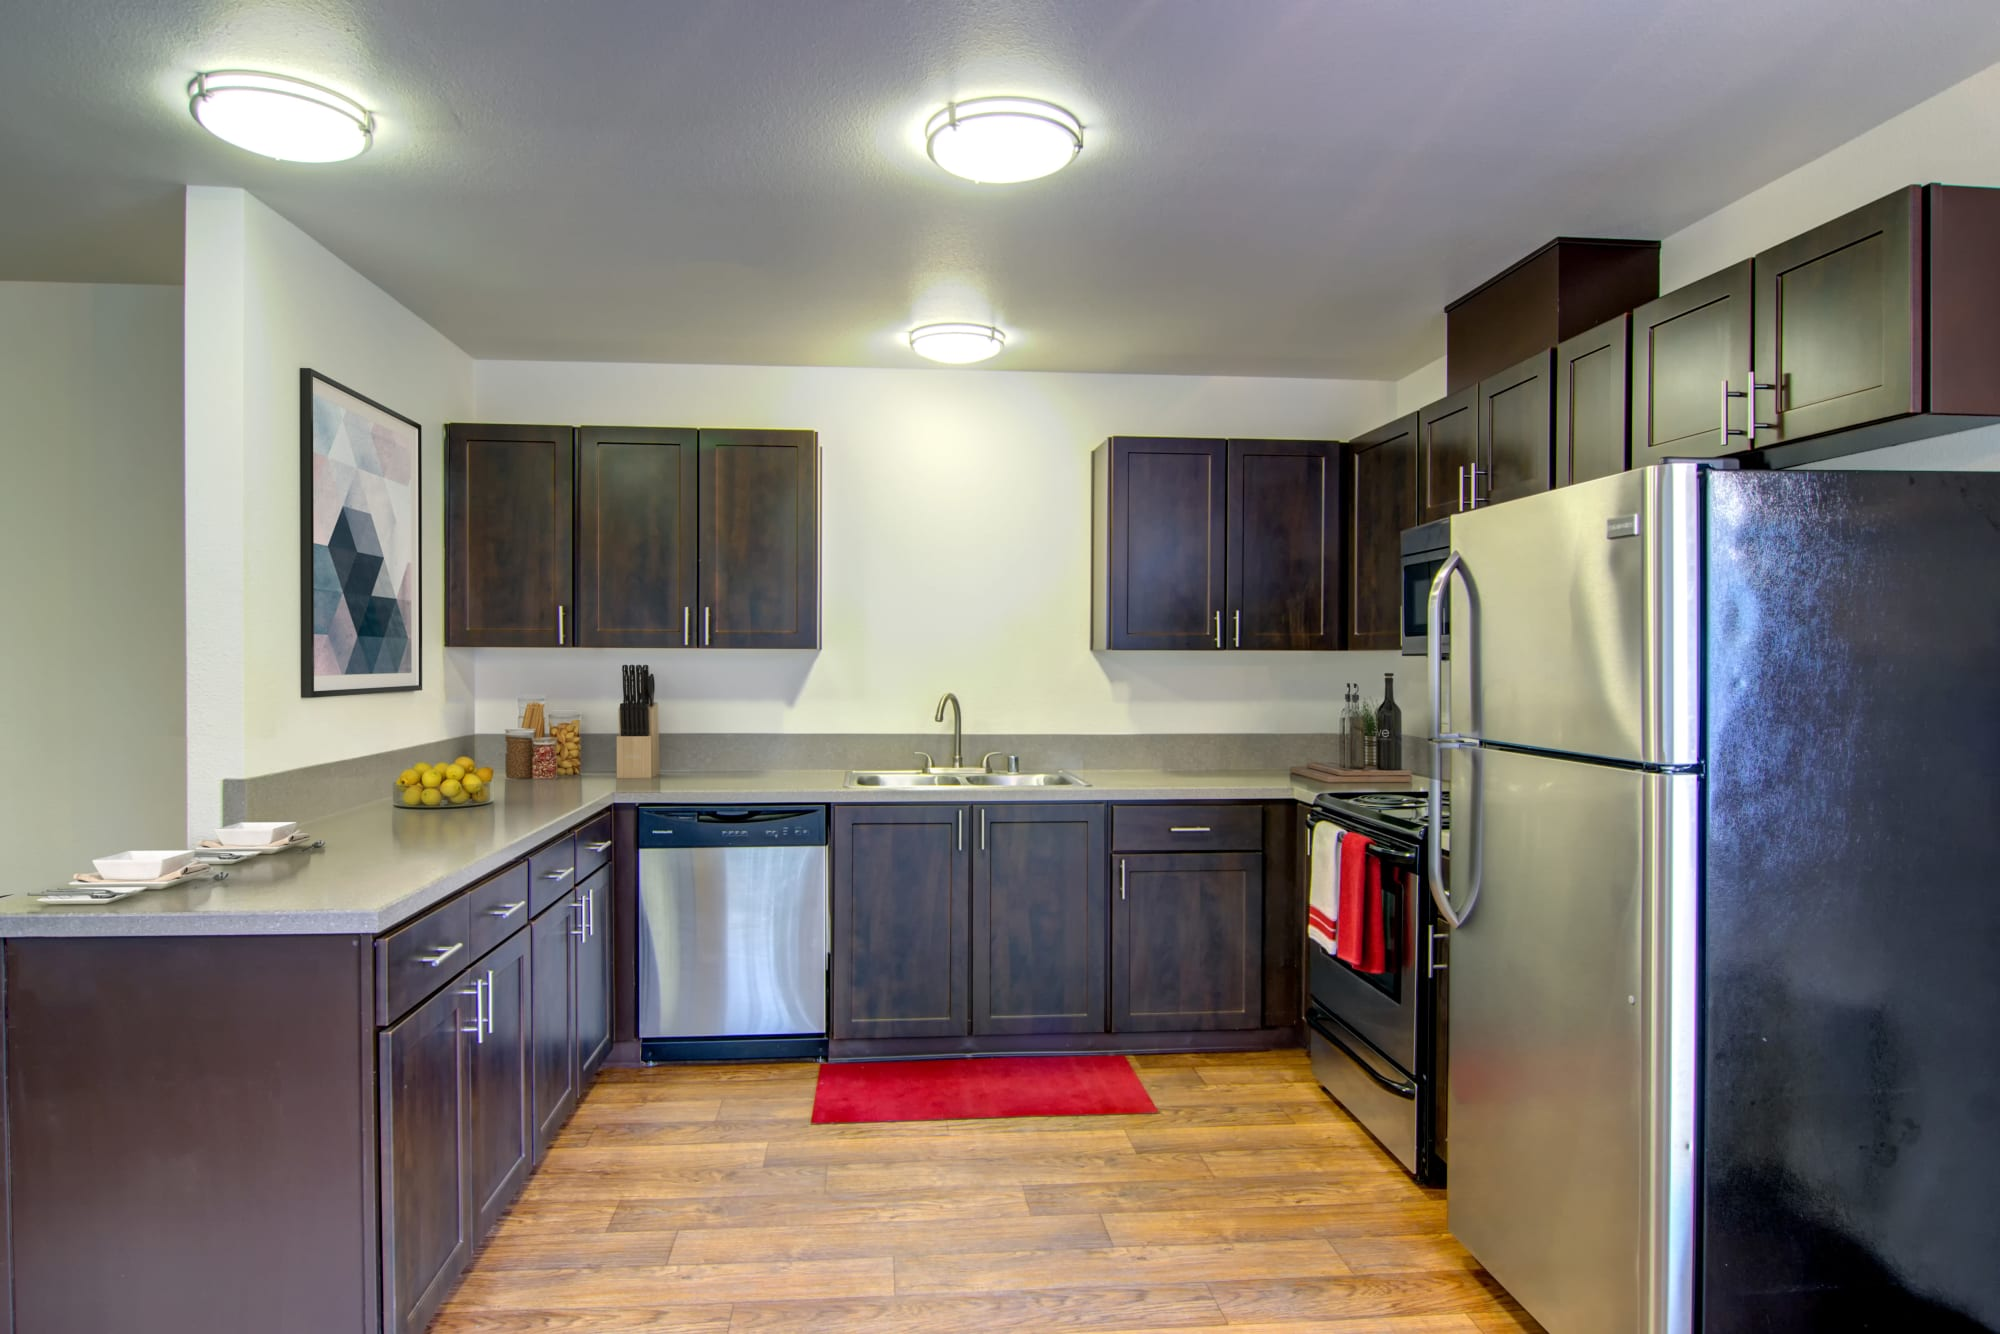 Renovated kitchen with brown cabinets and stainless steel appliances at The Addison Apartments in Vancouver, Washington